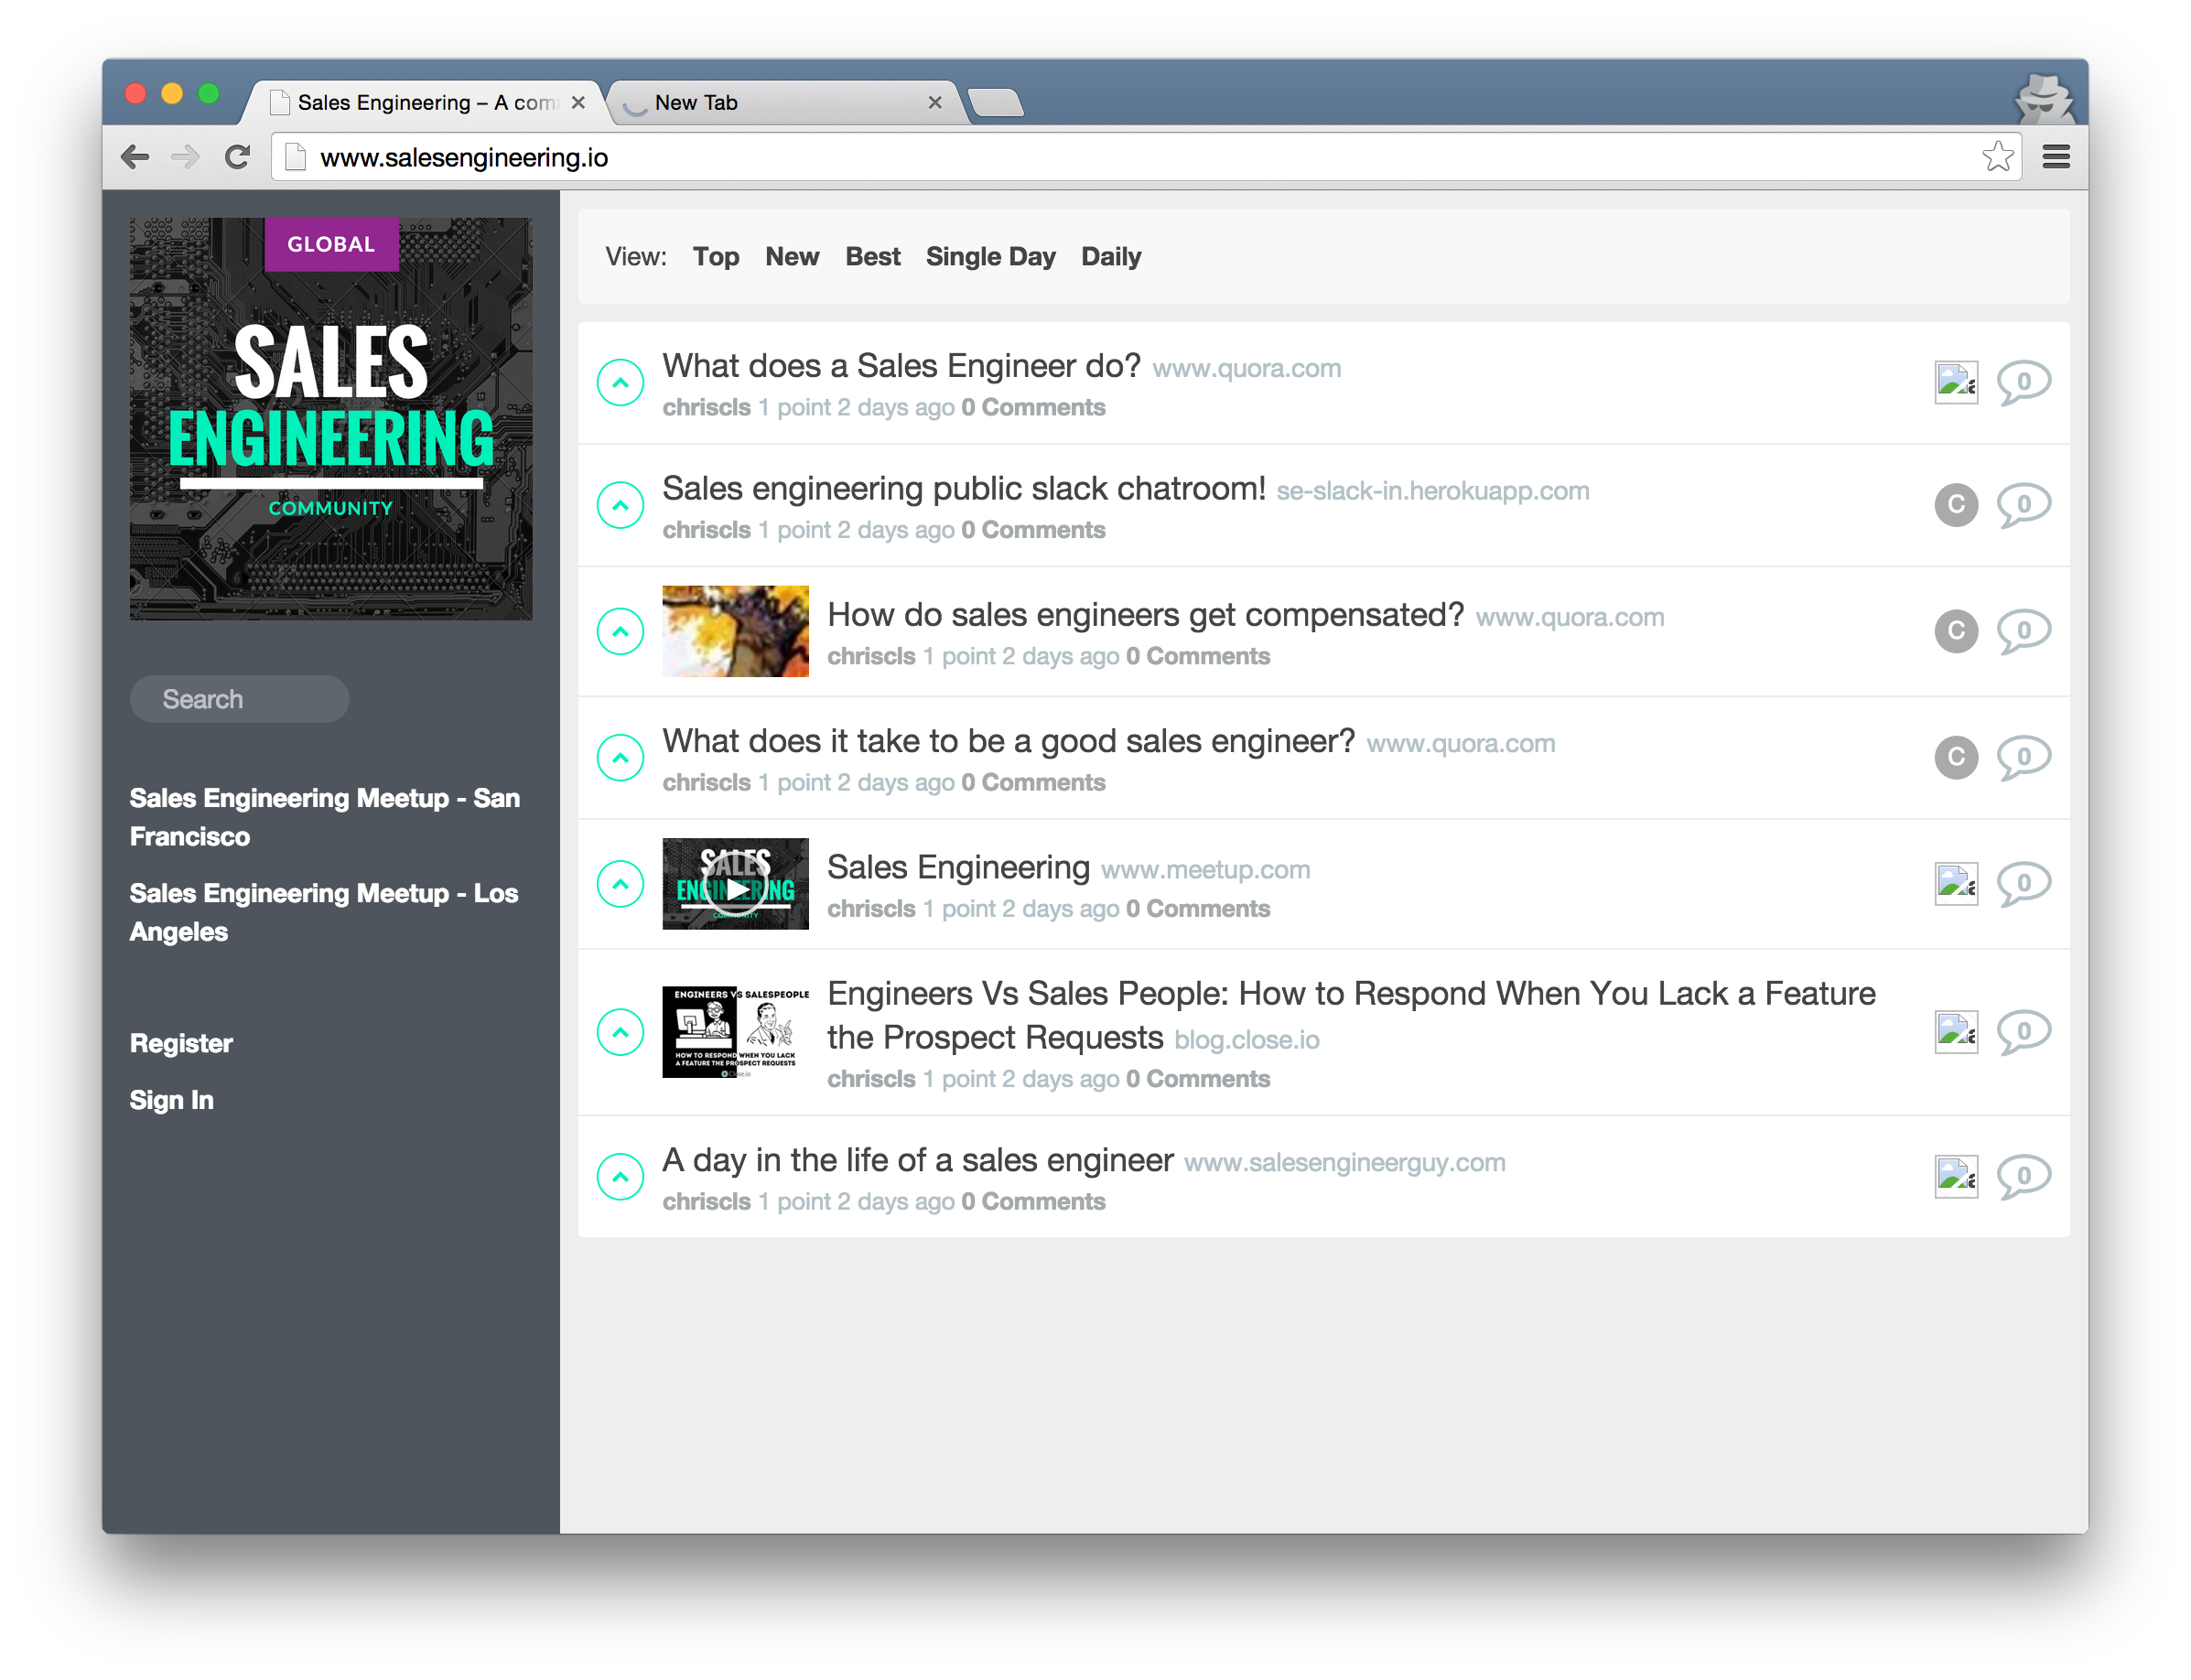 Sales engineering community page for knowledge sharing